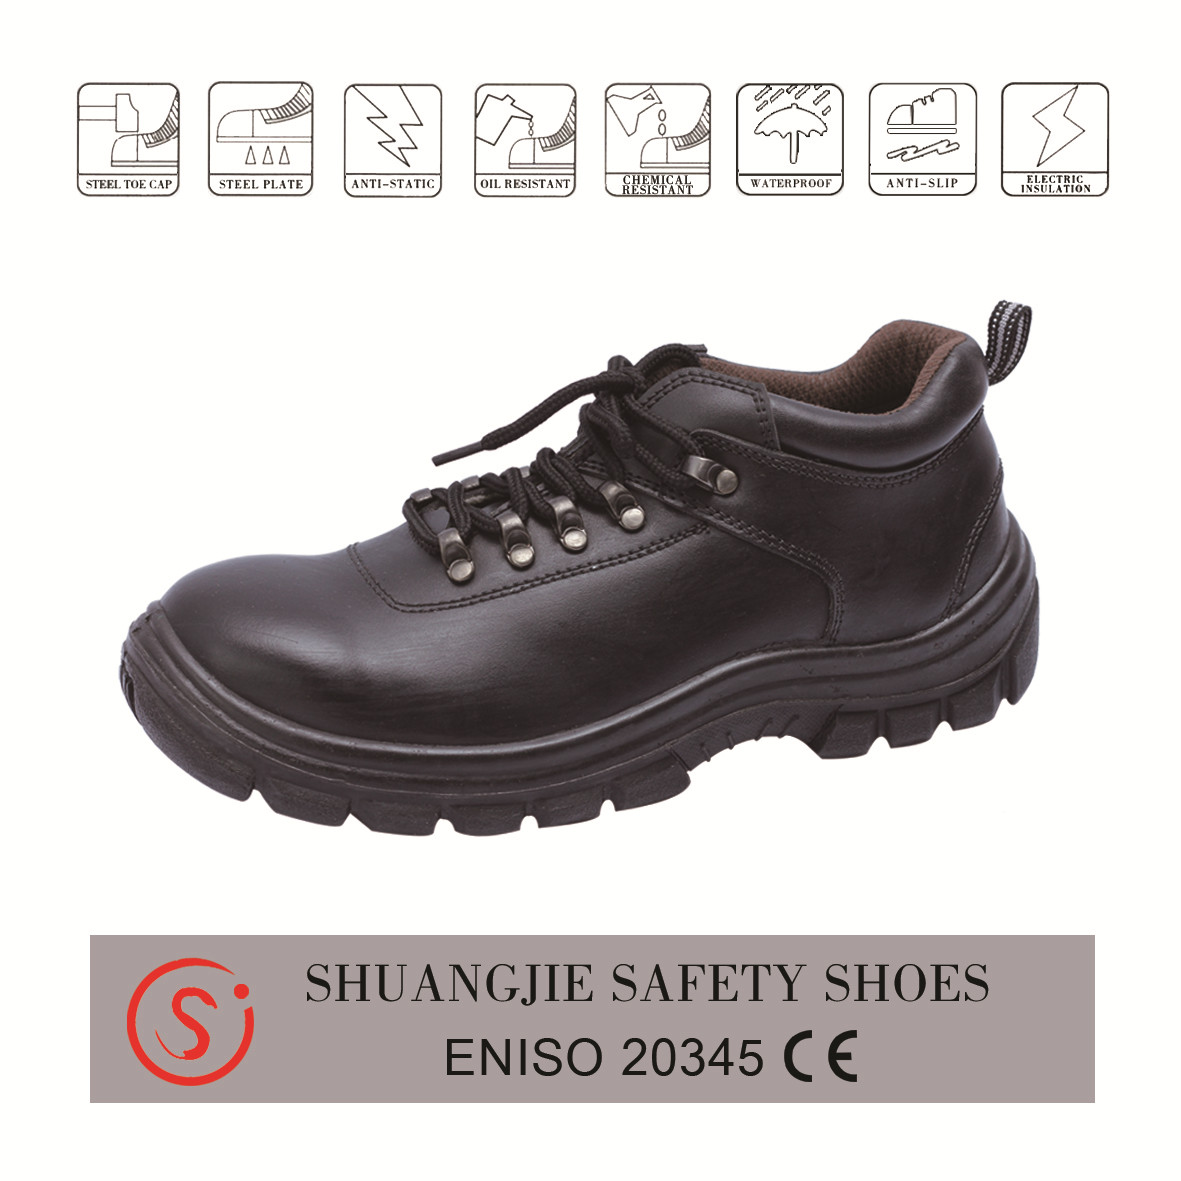 safety shoes work boots smooth leather pu outsole